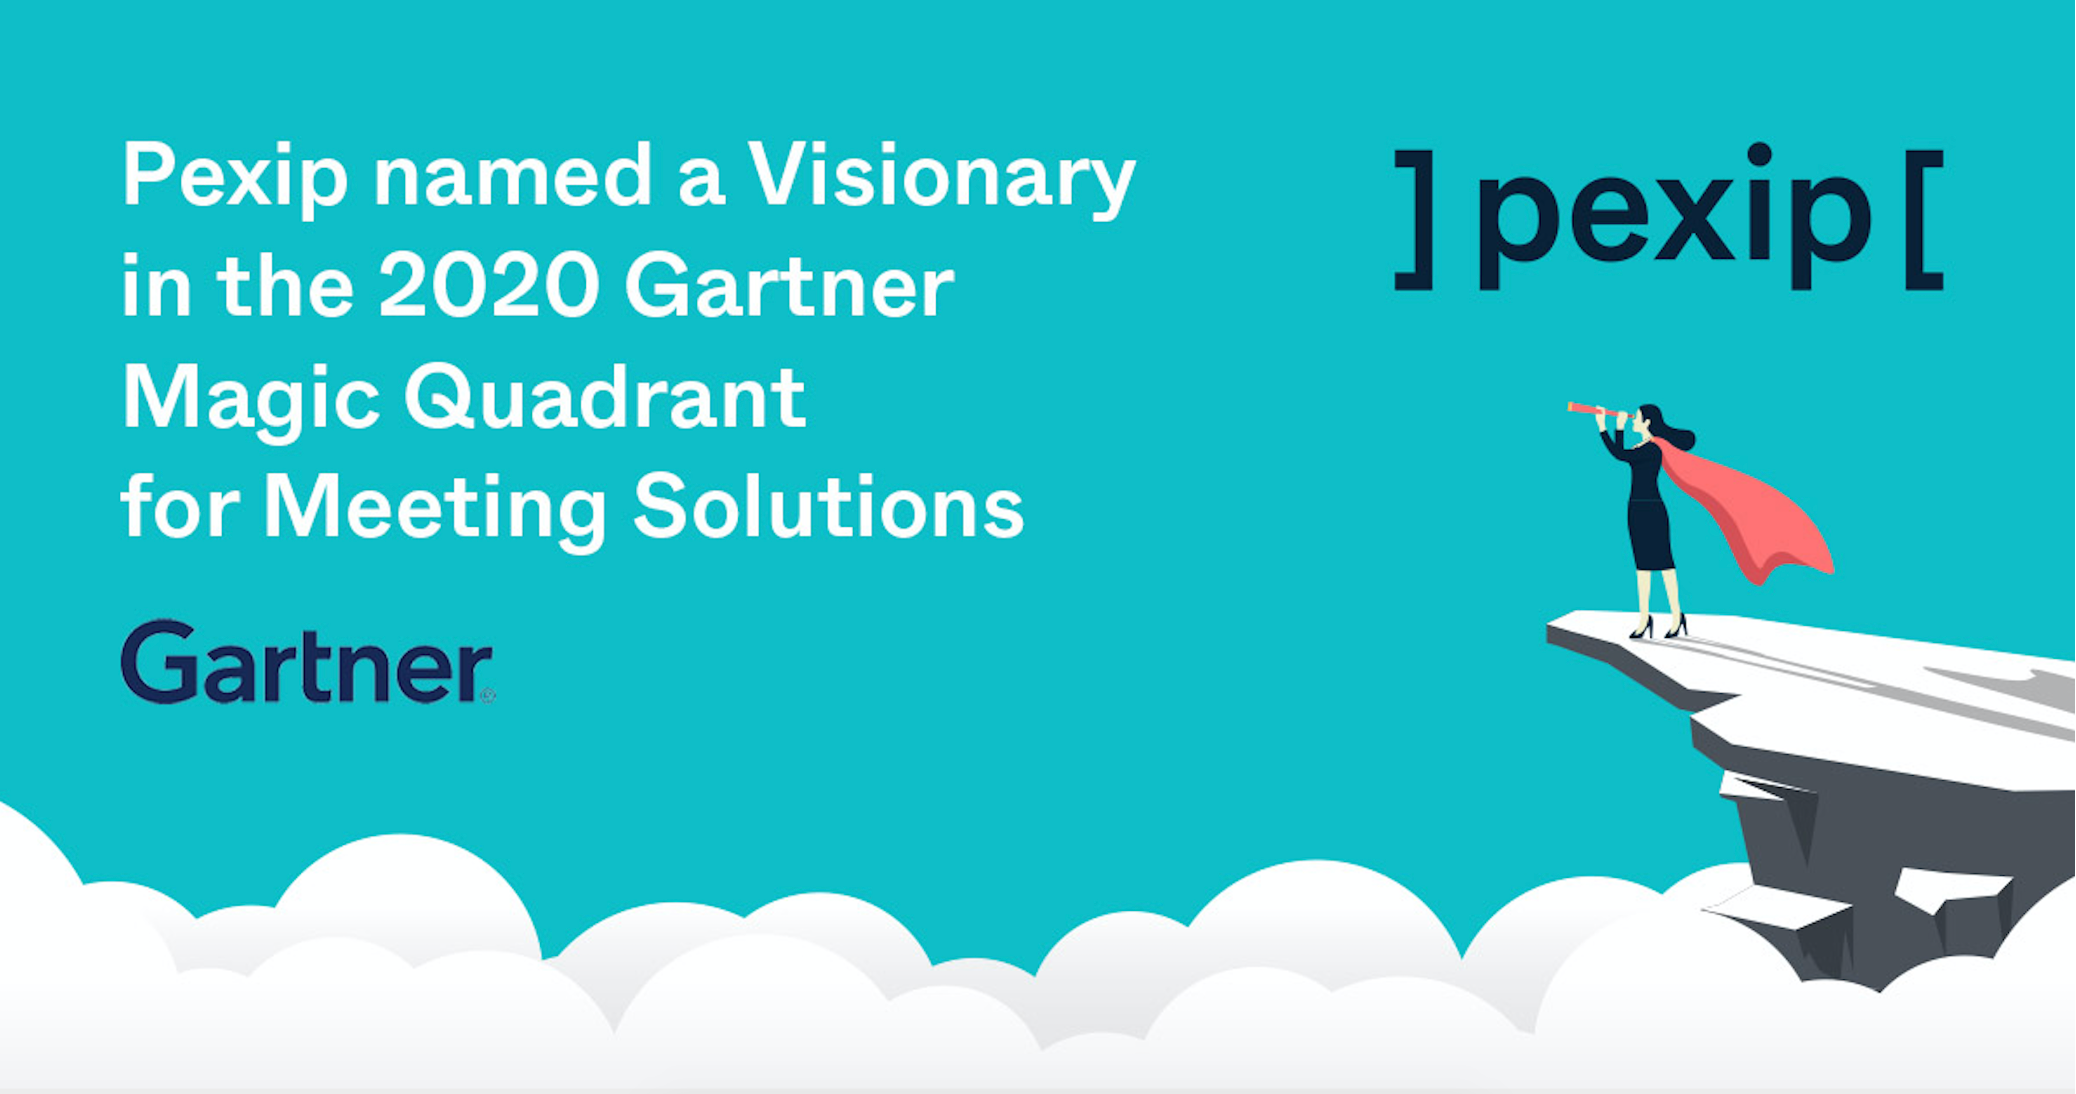 Pexip Named a Visionary in 2020 Gartner Magic Quadrant for Meeting Solutions for the Second Year in a Row